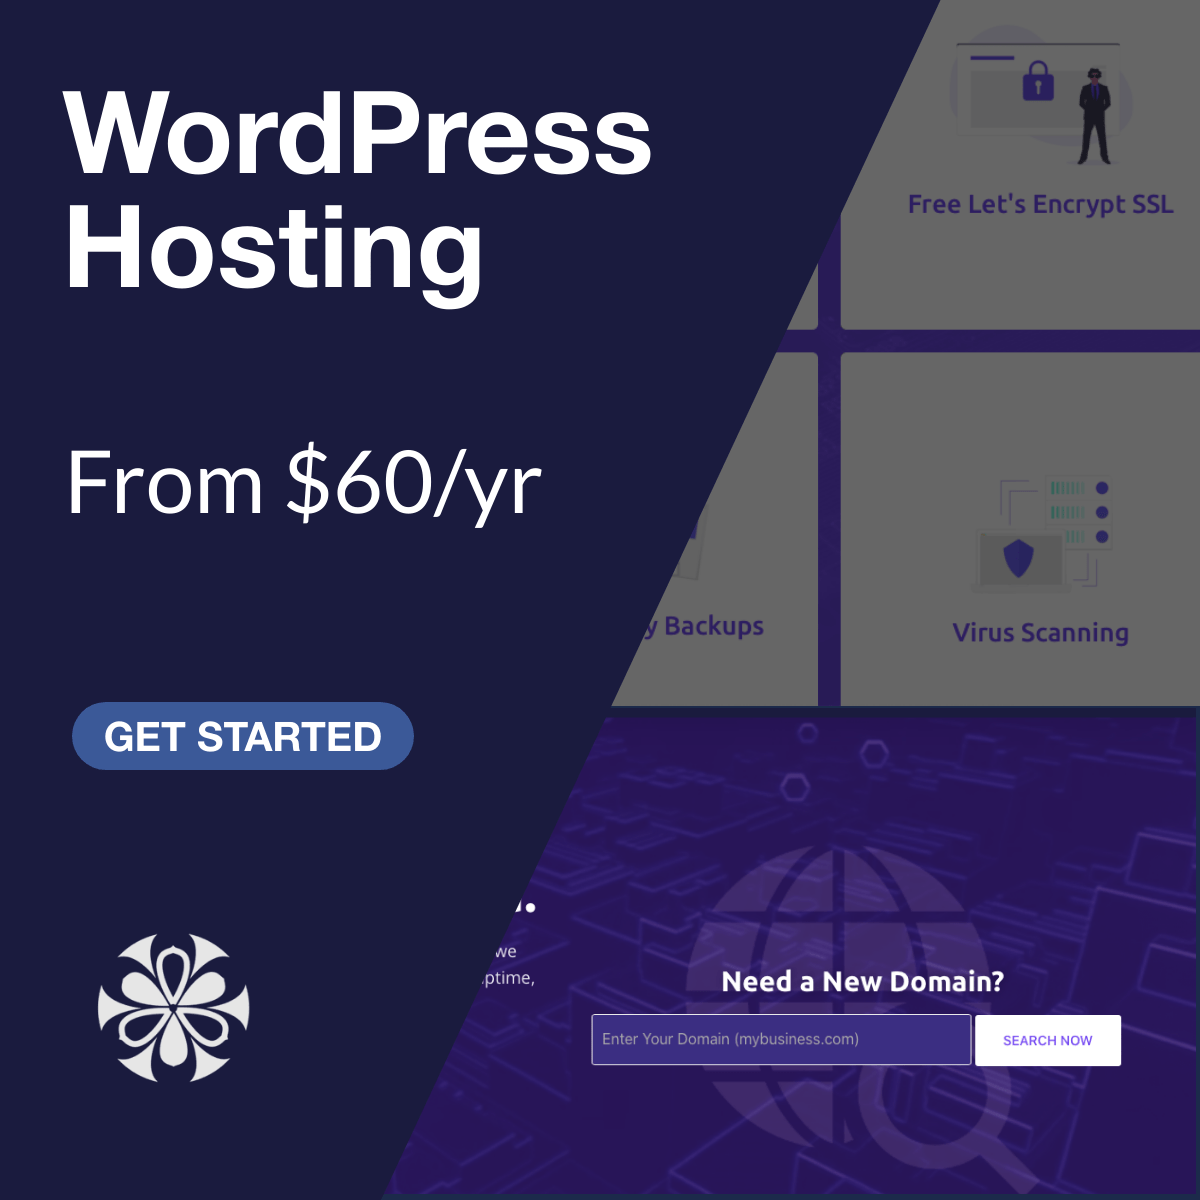 PIXALLUS - WORDPRESS HOSTING